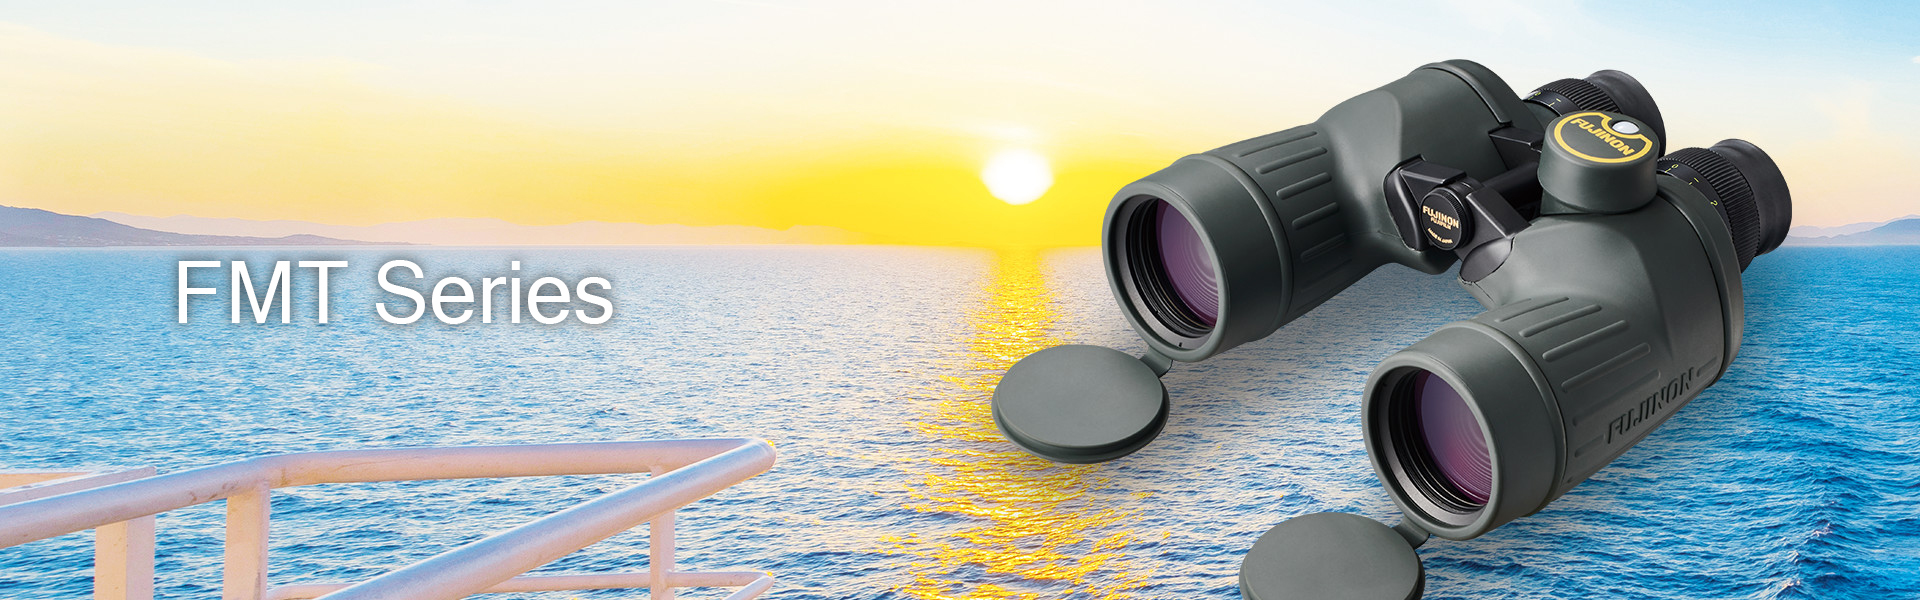 [photo] 7×50FMTRC-SX binoculars in front of ocean with yellow setting sun background